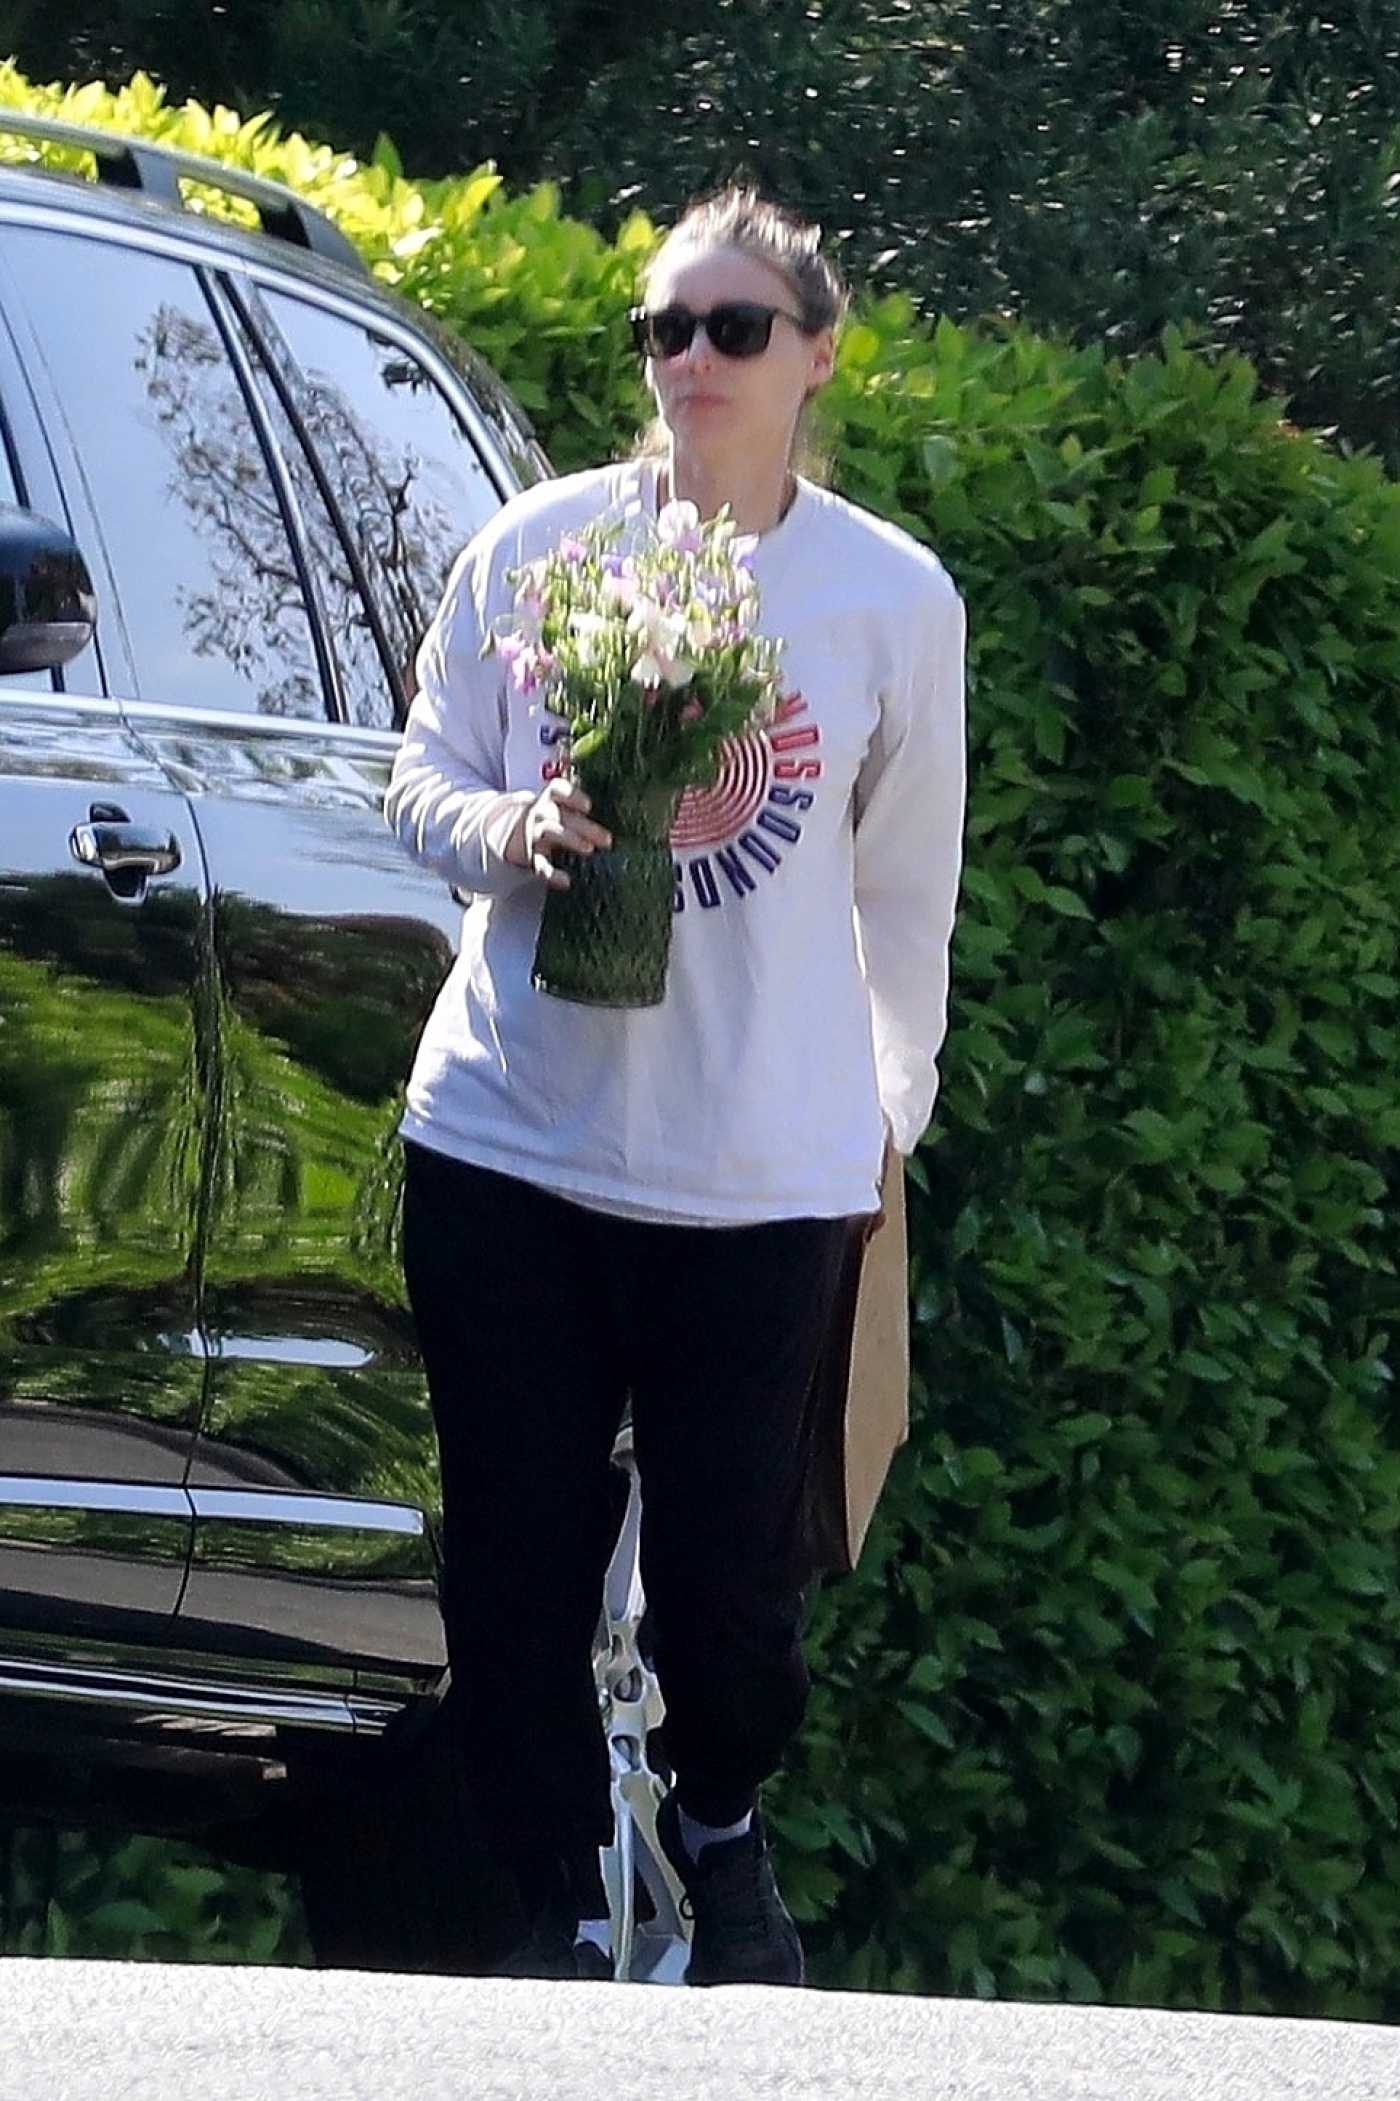 Rooney Mara in a White Sweatshirt Brings Flowers in Los Feliz 05/10/2020